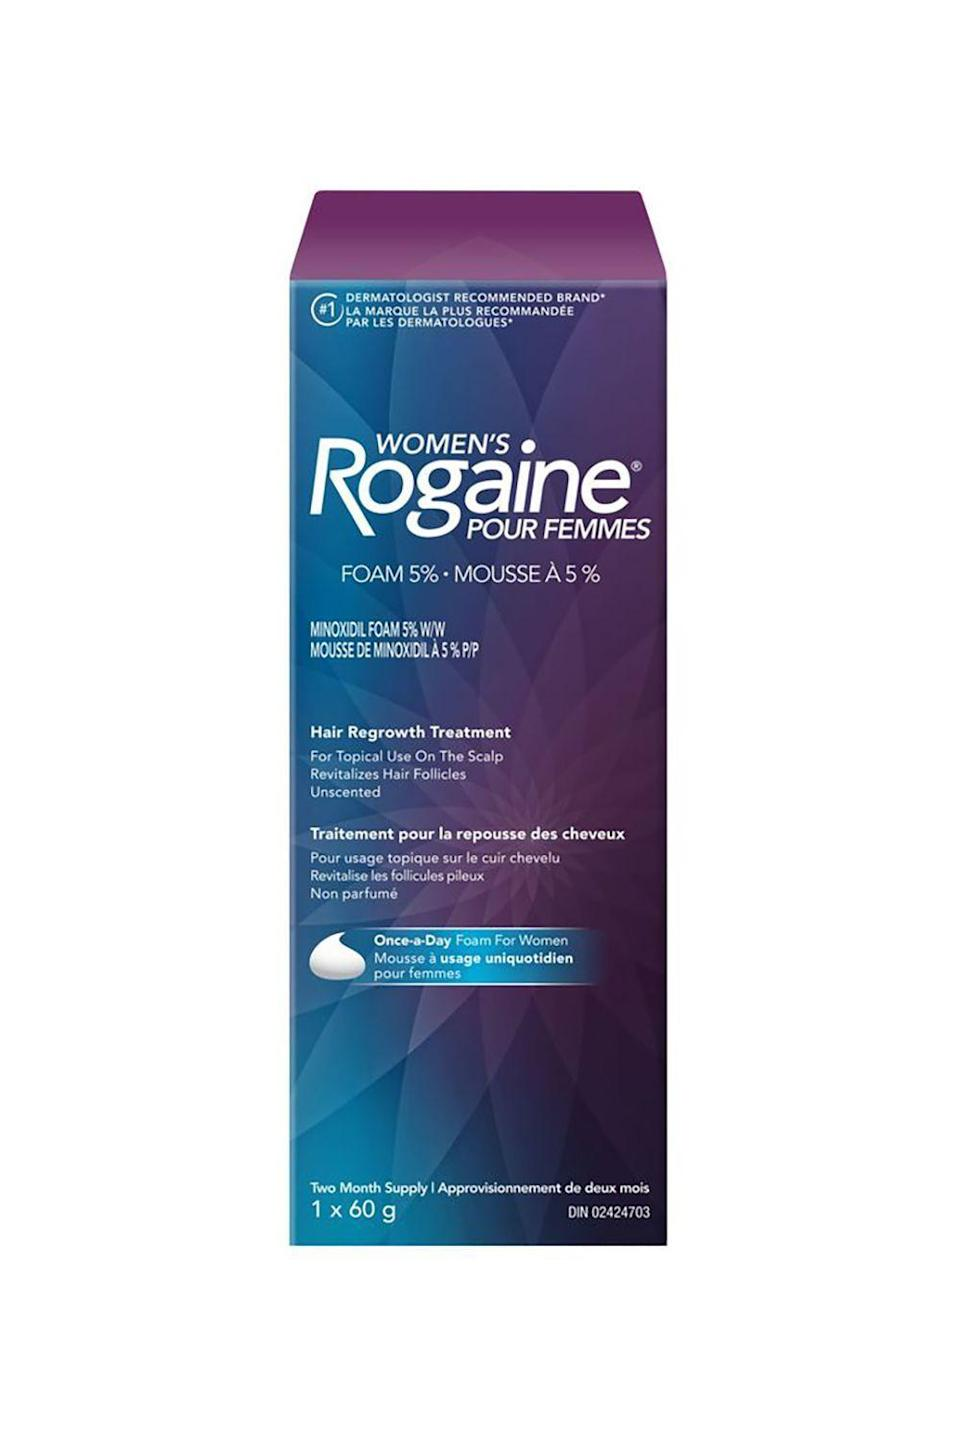 "<p><strong>Rogaine</strong></p><p>amazon.com</p><p><strong>$20.09</strong></p><p><a href=""https://www.amazon.com/dp/B0009RF9OG?tag=syn-yahoo-20&ascsubtag=%5Bartid%7C10058.g.25647514%5Bsrc%7Cyahoo-us"" rel=""nofollow noopener"" target=""_blank"" data-ylk=""slk:SHOP IT"" class=""link rapid-noclick-resp"">SHOP IT</a></p><p>When you hear ""Rogaine,"" you might think ""for men,"" but Dueñas says it's a huge help in creating a thicker and fuller hairline for women—and can stop hair loss and baldness. Dr. Engelman is also a fan of Rogaine and <a href=""https://www.walgreens.com/store/c/nizoral-a-d-ketoconazole-anti-dandruff-shampoo/ID=prod6098189-product"" rel=""nofollow noopener"" target=""_blank"" data-ylk=""slk:Ketoconazole"" class=""link rapid-noclick-resp"">Ketoconazole</a>, another over the counter option.<strong> In a <a href=""https://www.ncbi.nlm.nih.gov/pubmed/9669136"" rel=""nofollow noopener"" target=""_blank"" data-ylk=""slk:study"" class=""link rapid-noclick-resp"">study</a>, researchers discovered that 2 percent of Ketoconazole shampoo increased the size and proportion of anagen hair follicles</strong> (hair that's in its growth phase). </p>"